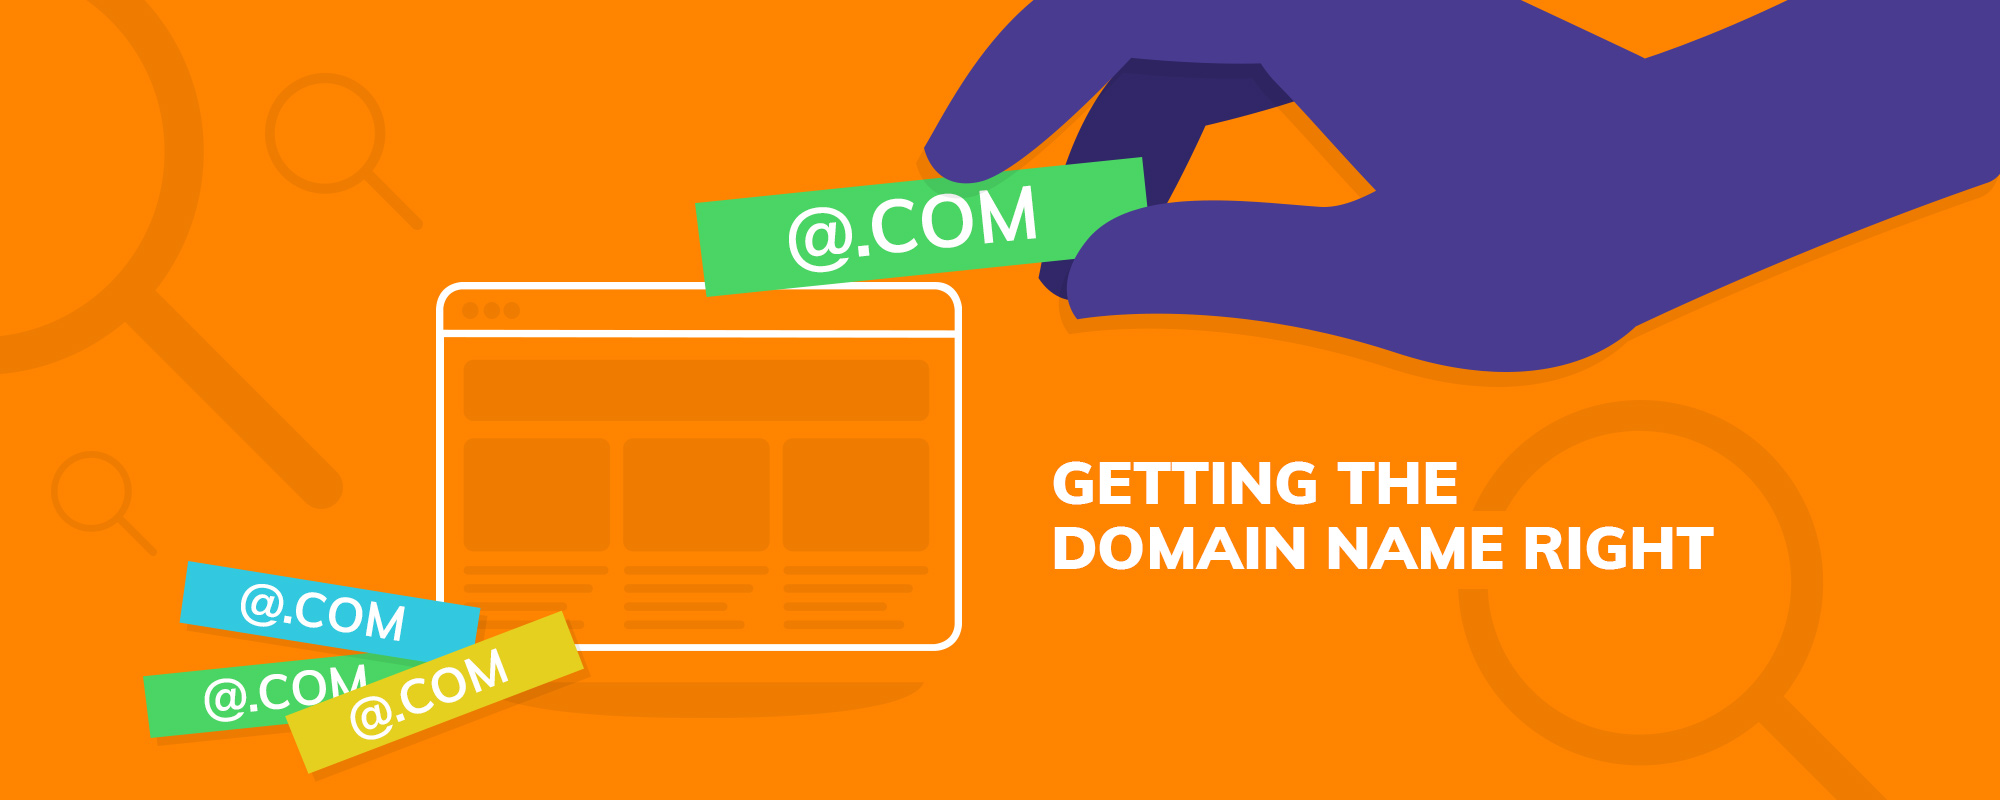 How To Pick A Good Domain Name For An eCommerce Business